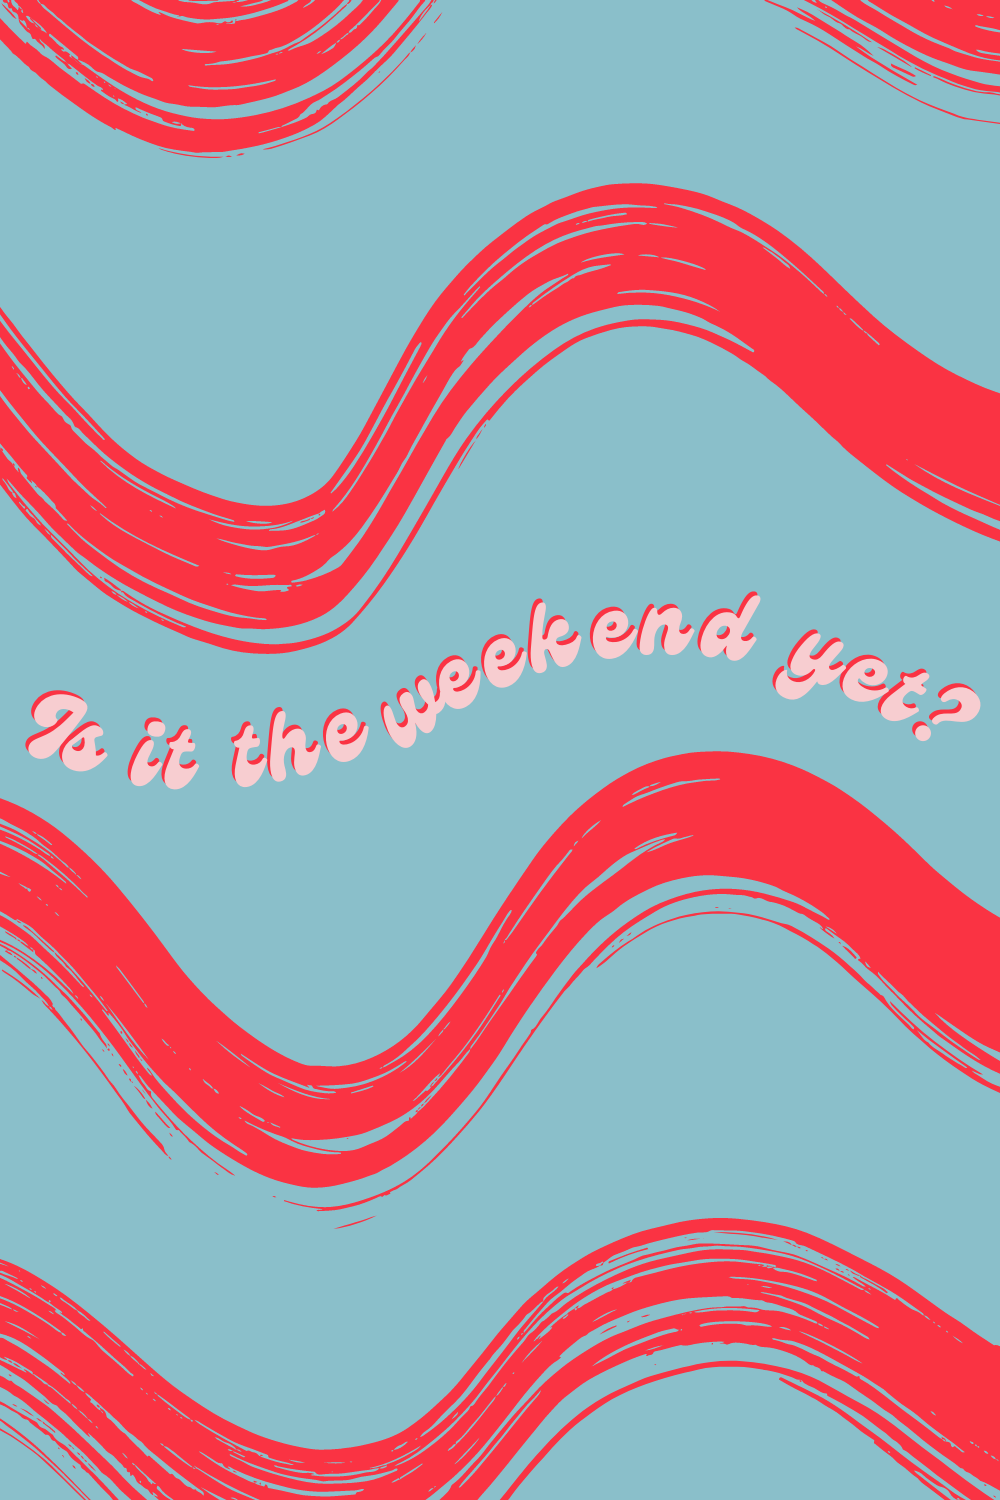 Is it the weekend quotes